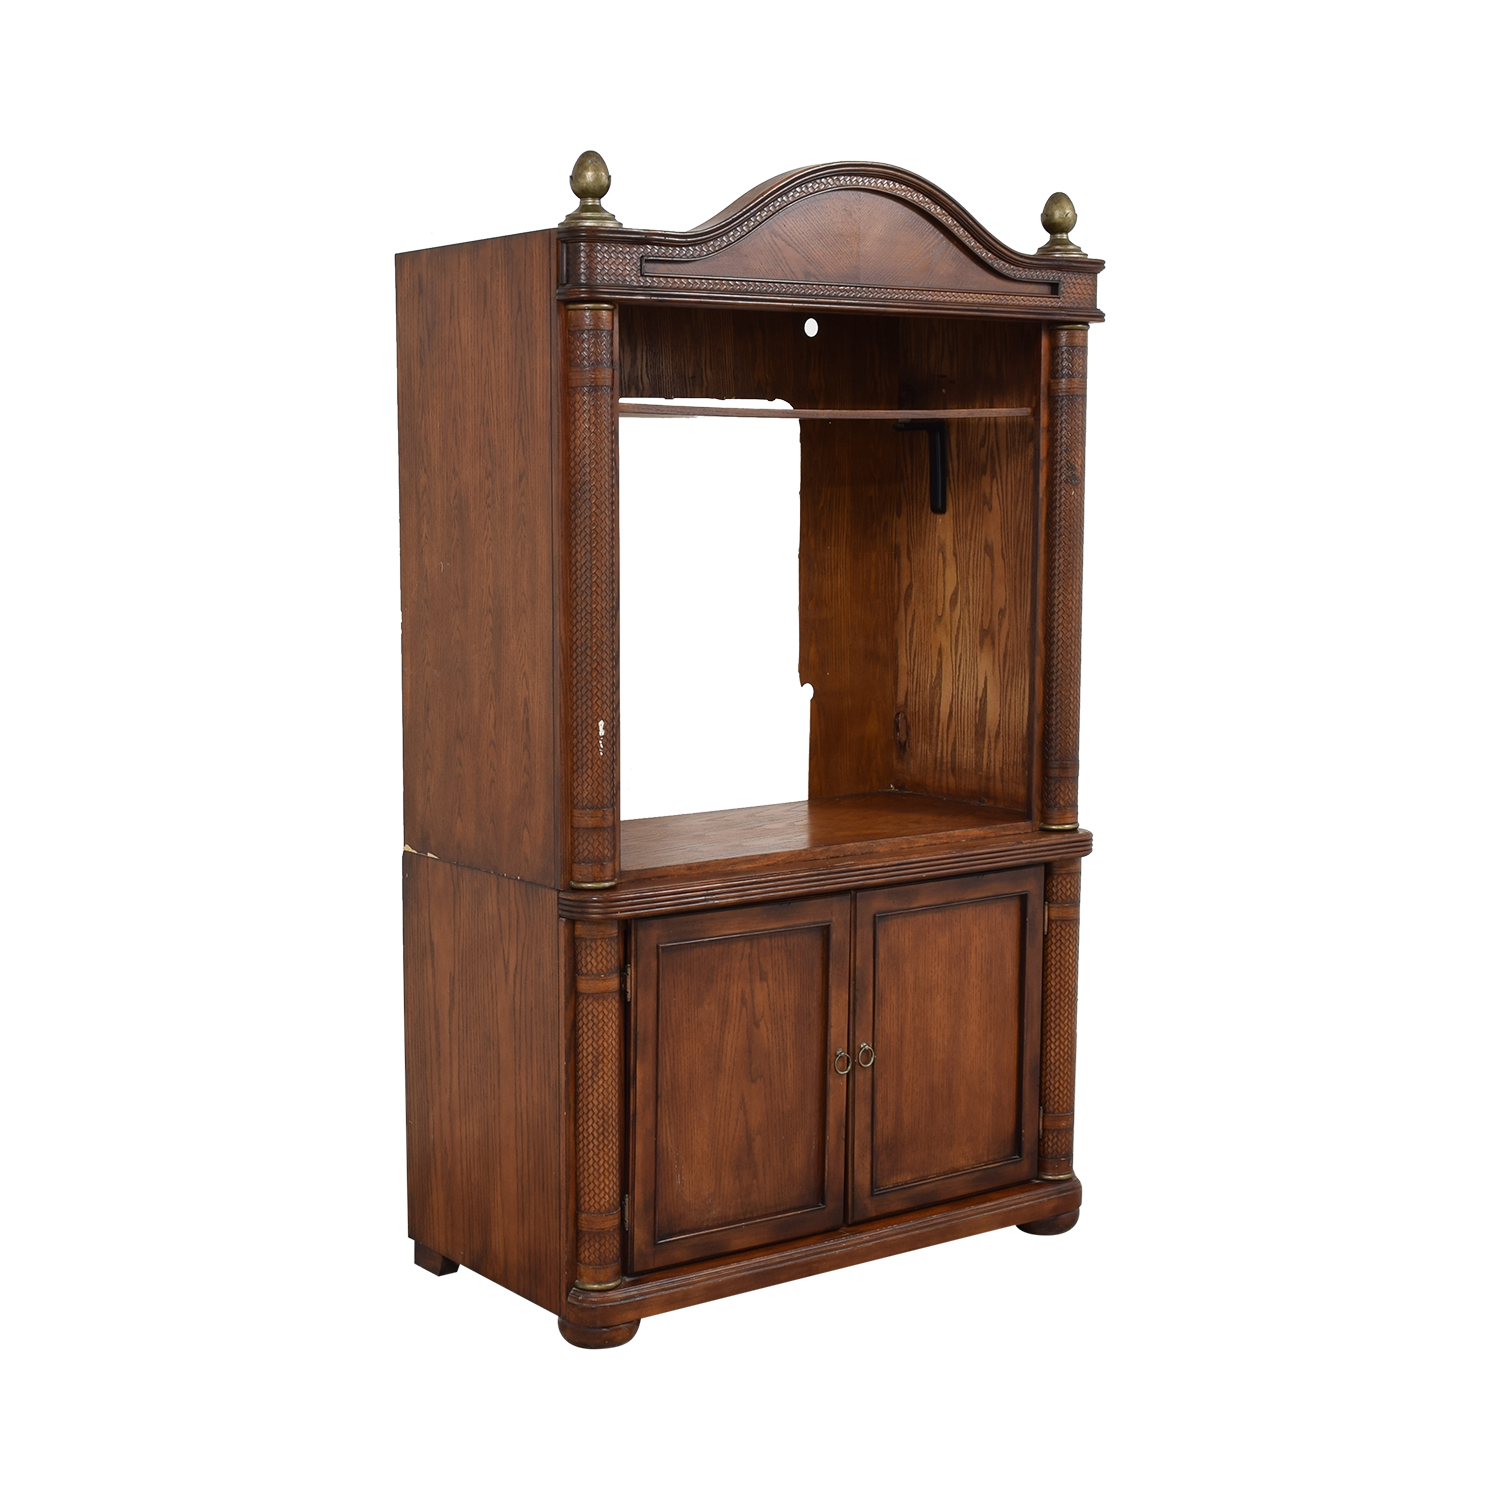 Rustic Media Armoire Unit second hand